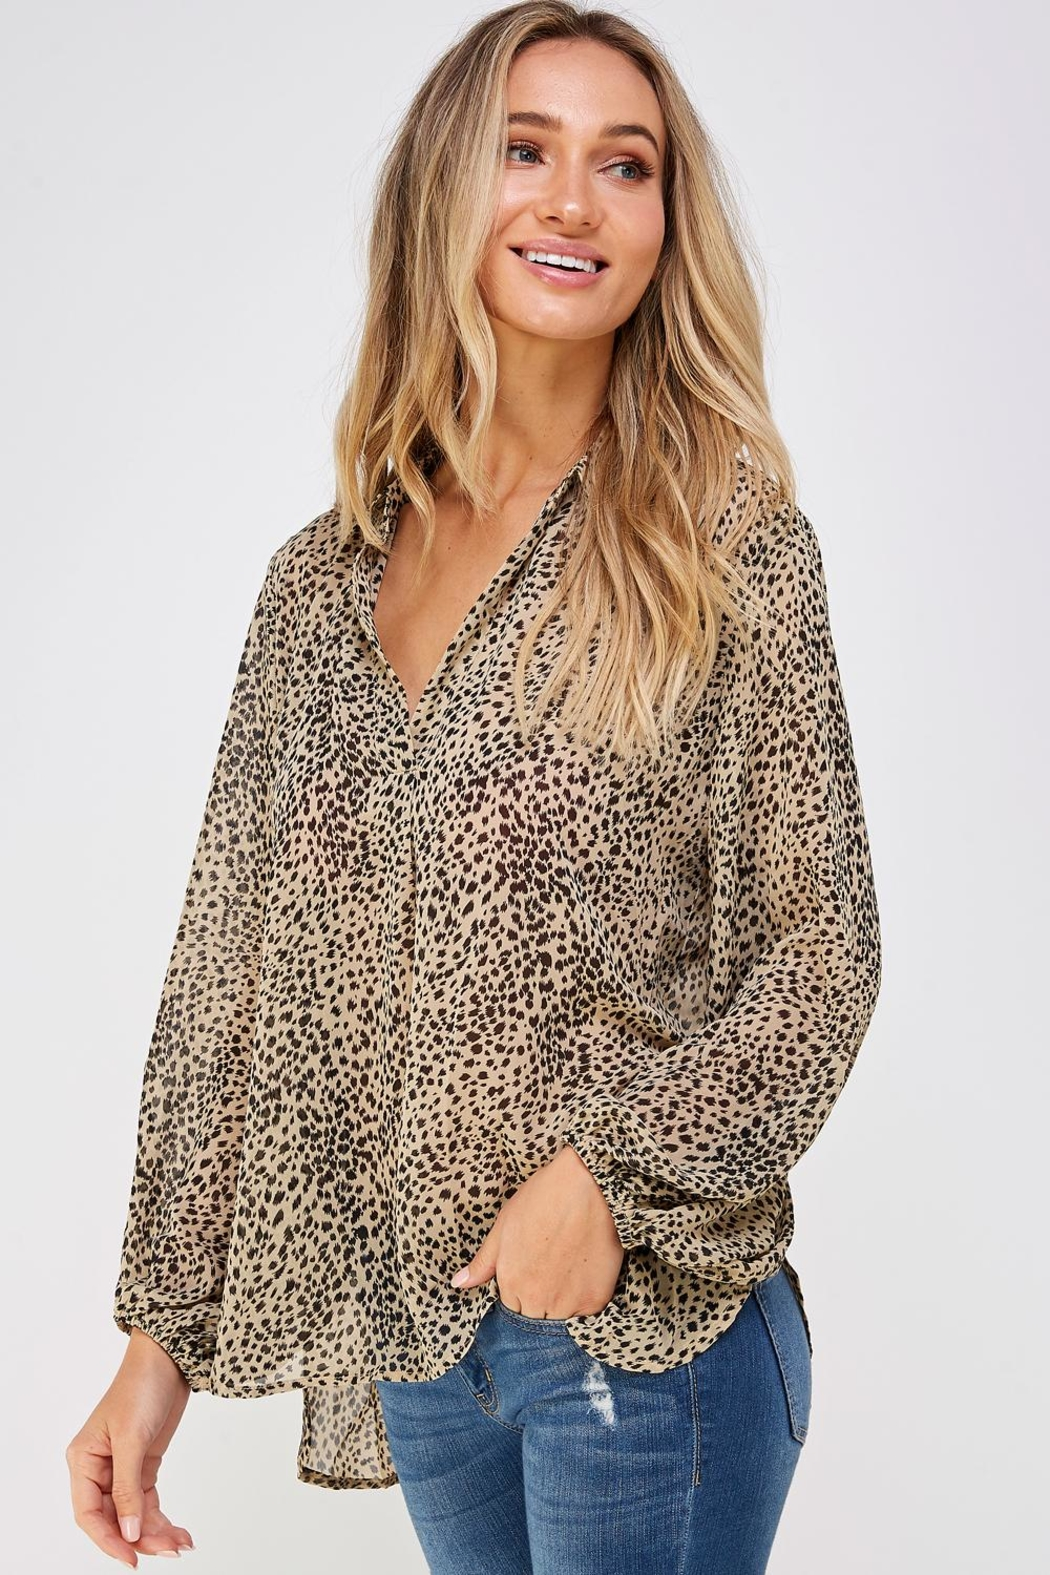 AAKAA Leopard Print Blouse - Side Cropped Image